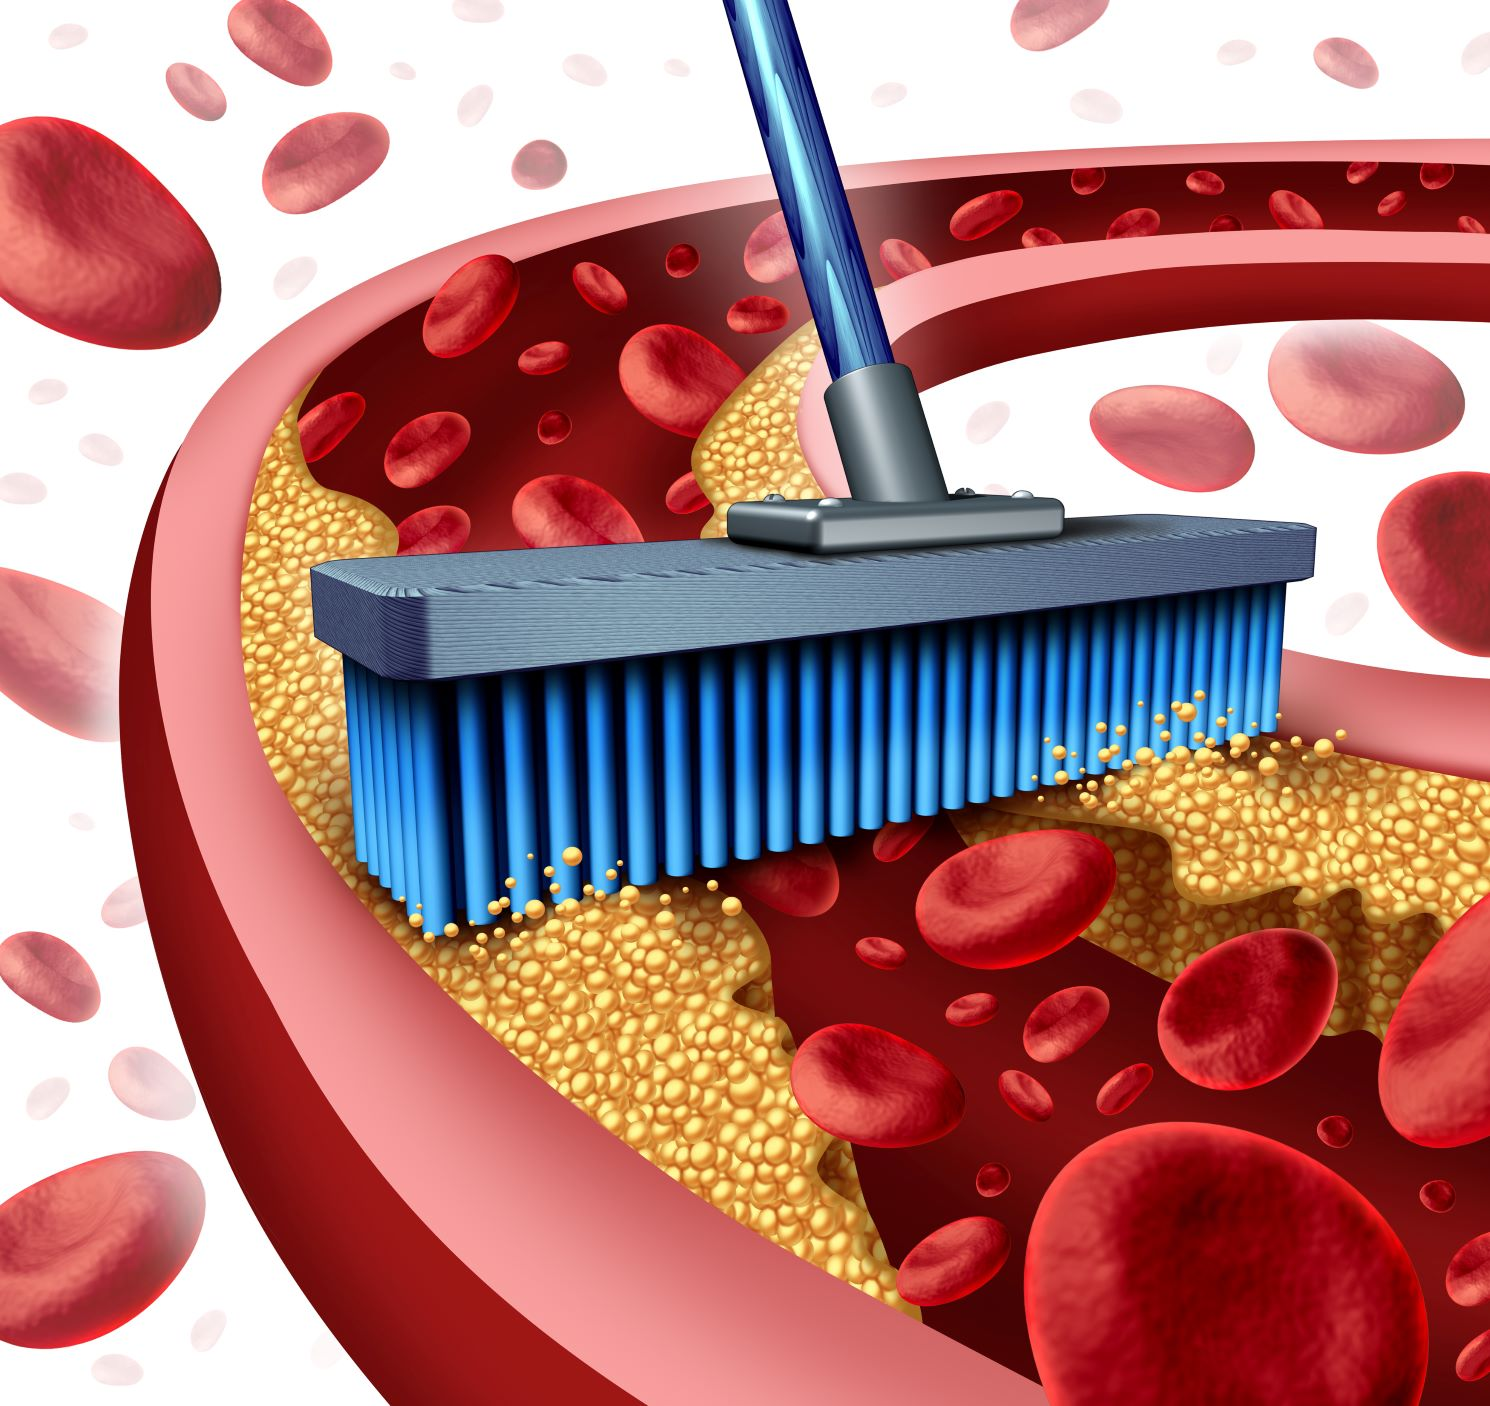 clogged arteries, symptoms of clogged arteries, signs of clogged arteries, what causes clogged arteries, what is main cause of clogged arteries